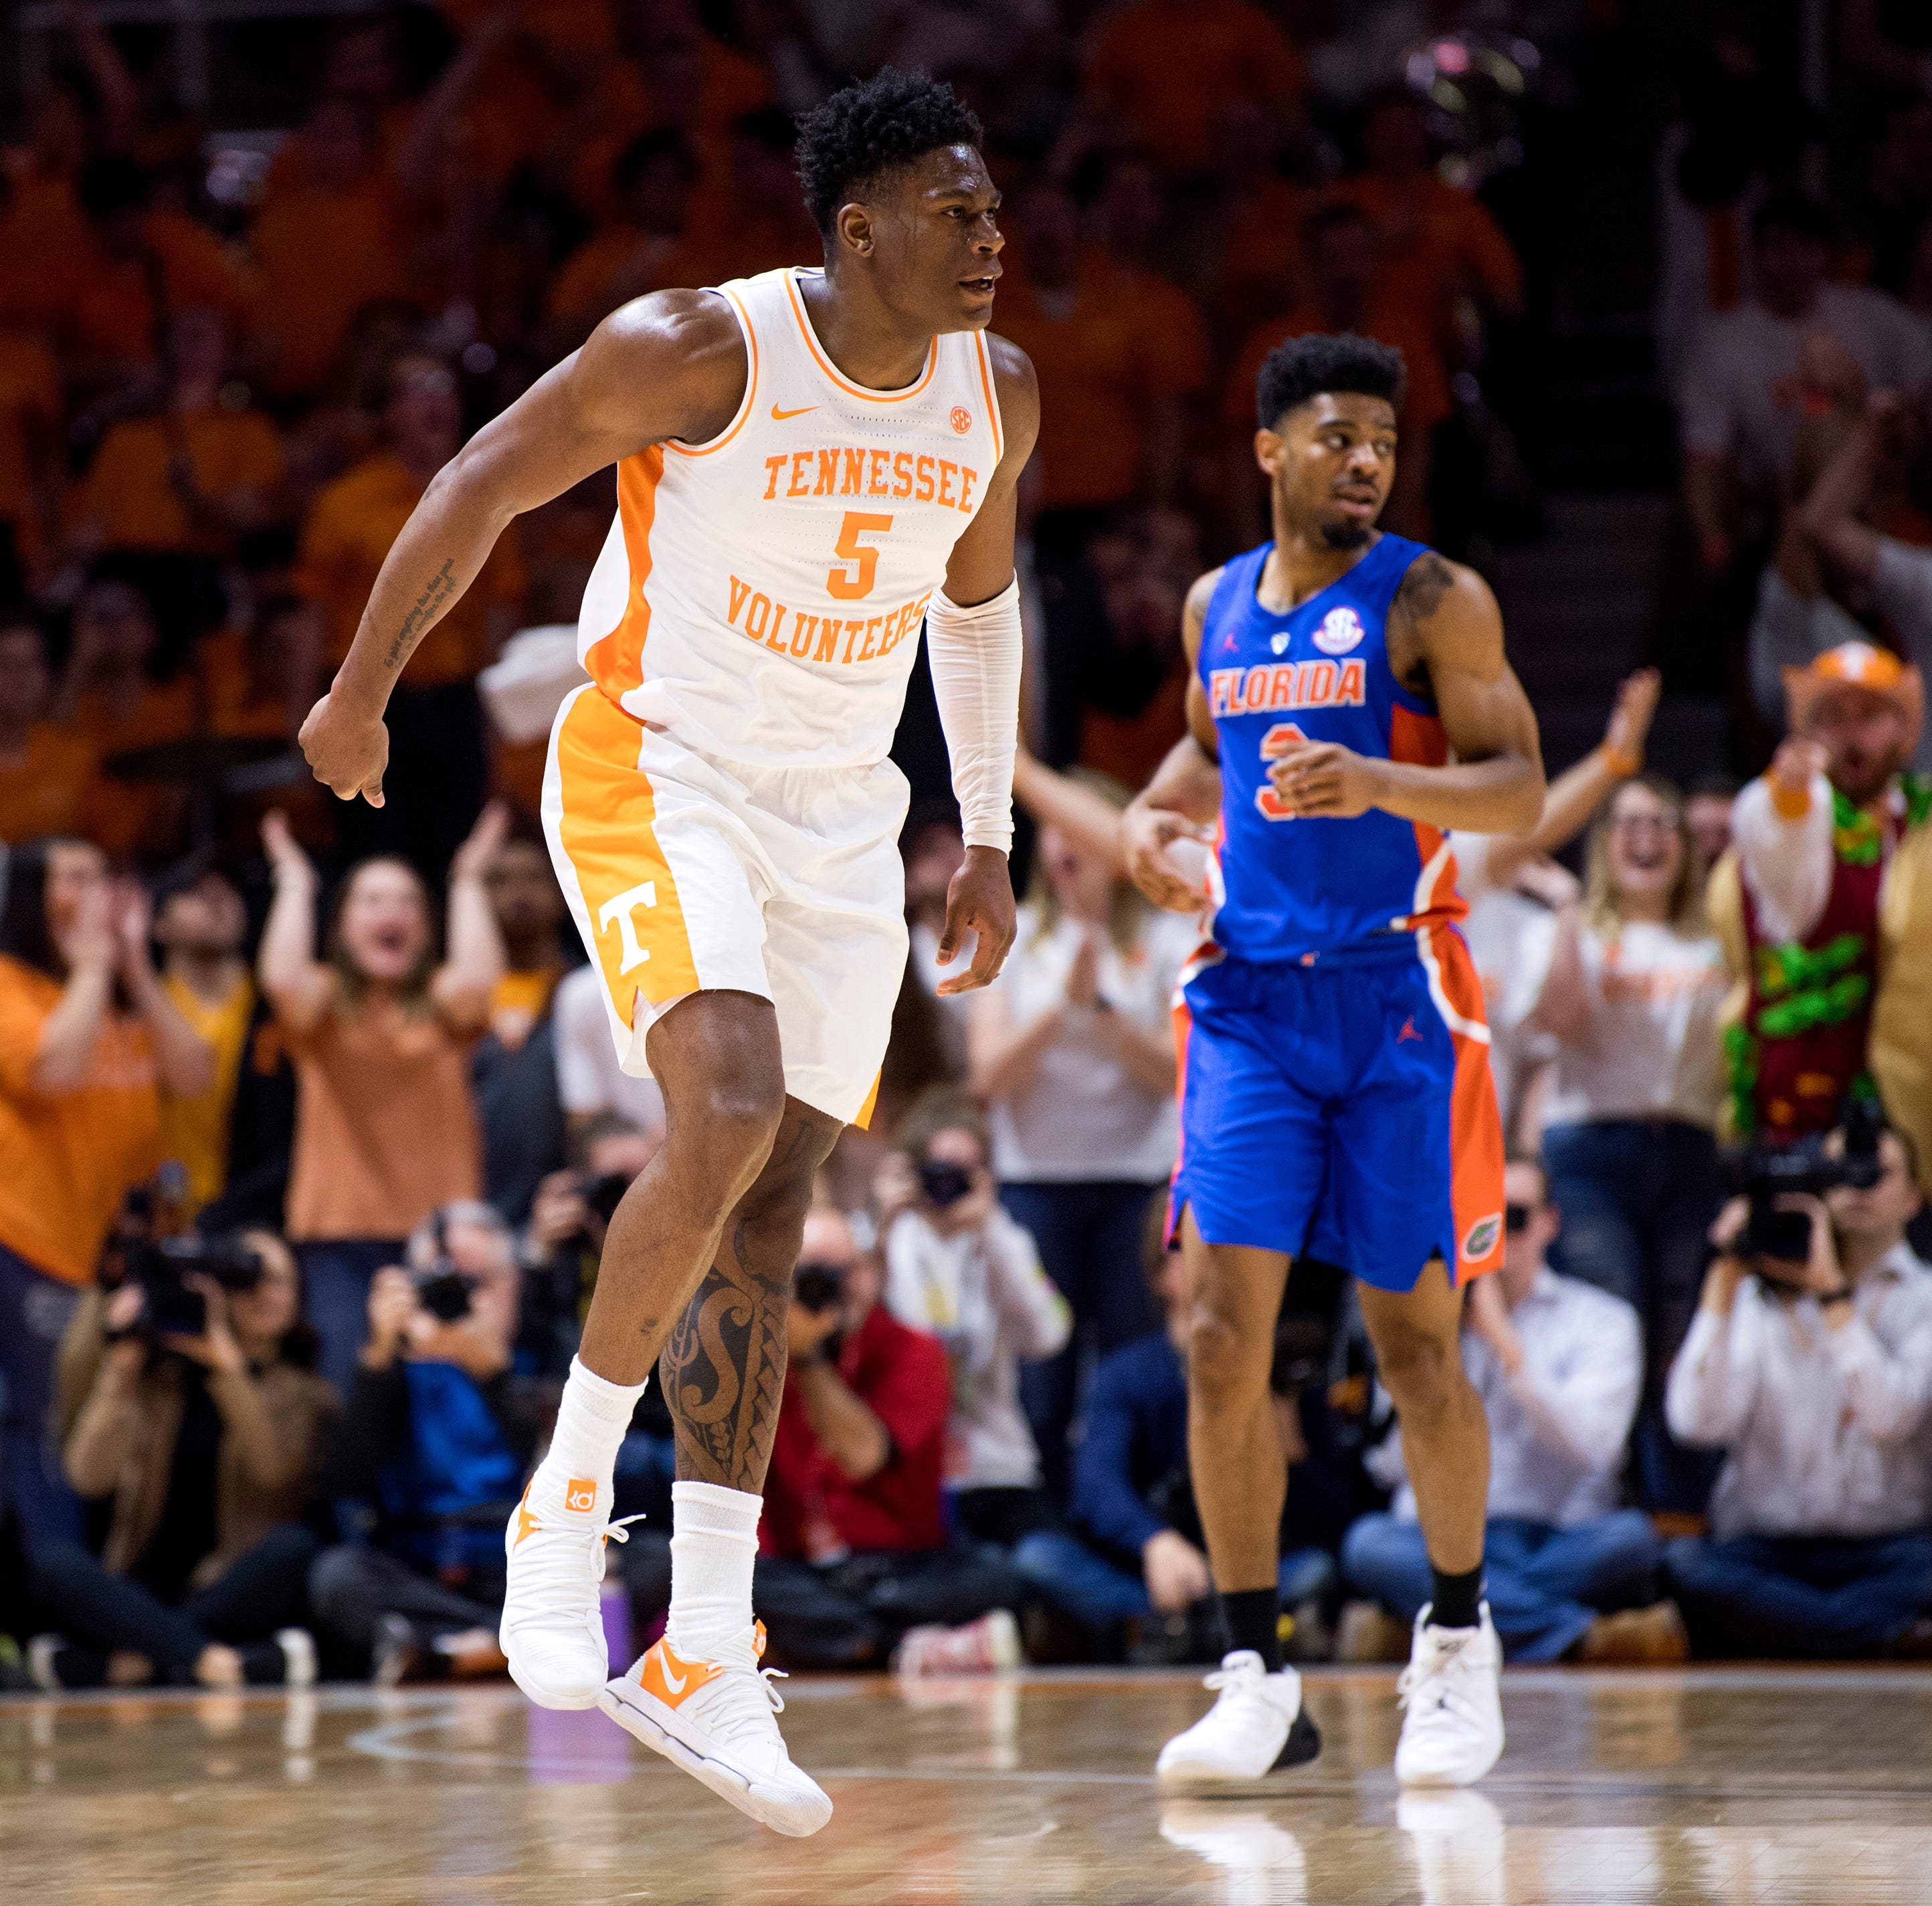 UT Vols: Admiral Schofield dunks Florida away in Tennessee basketball's 18th straight win